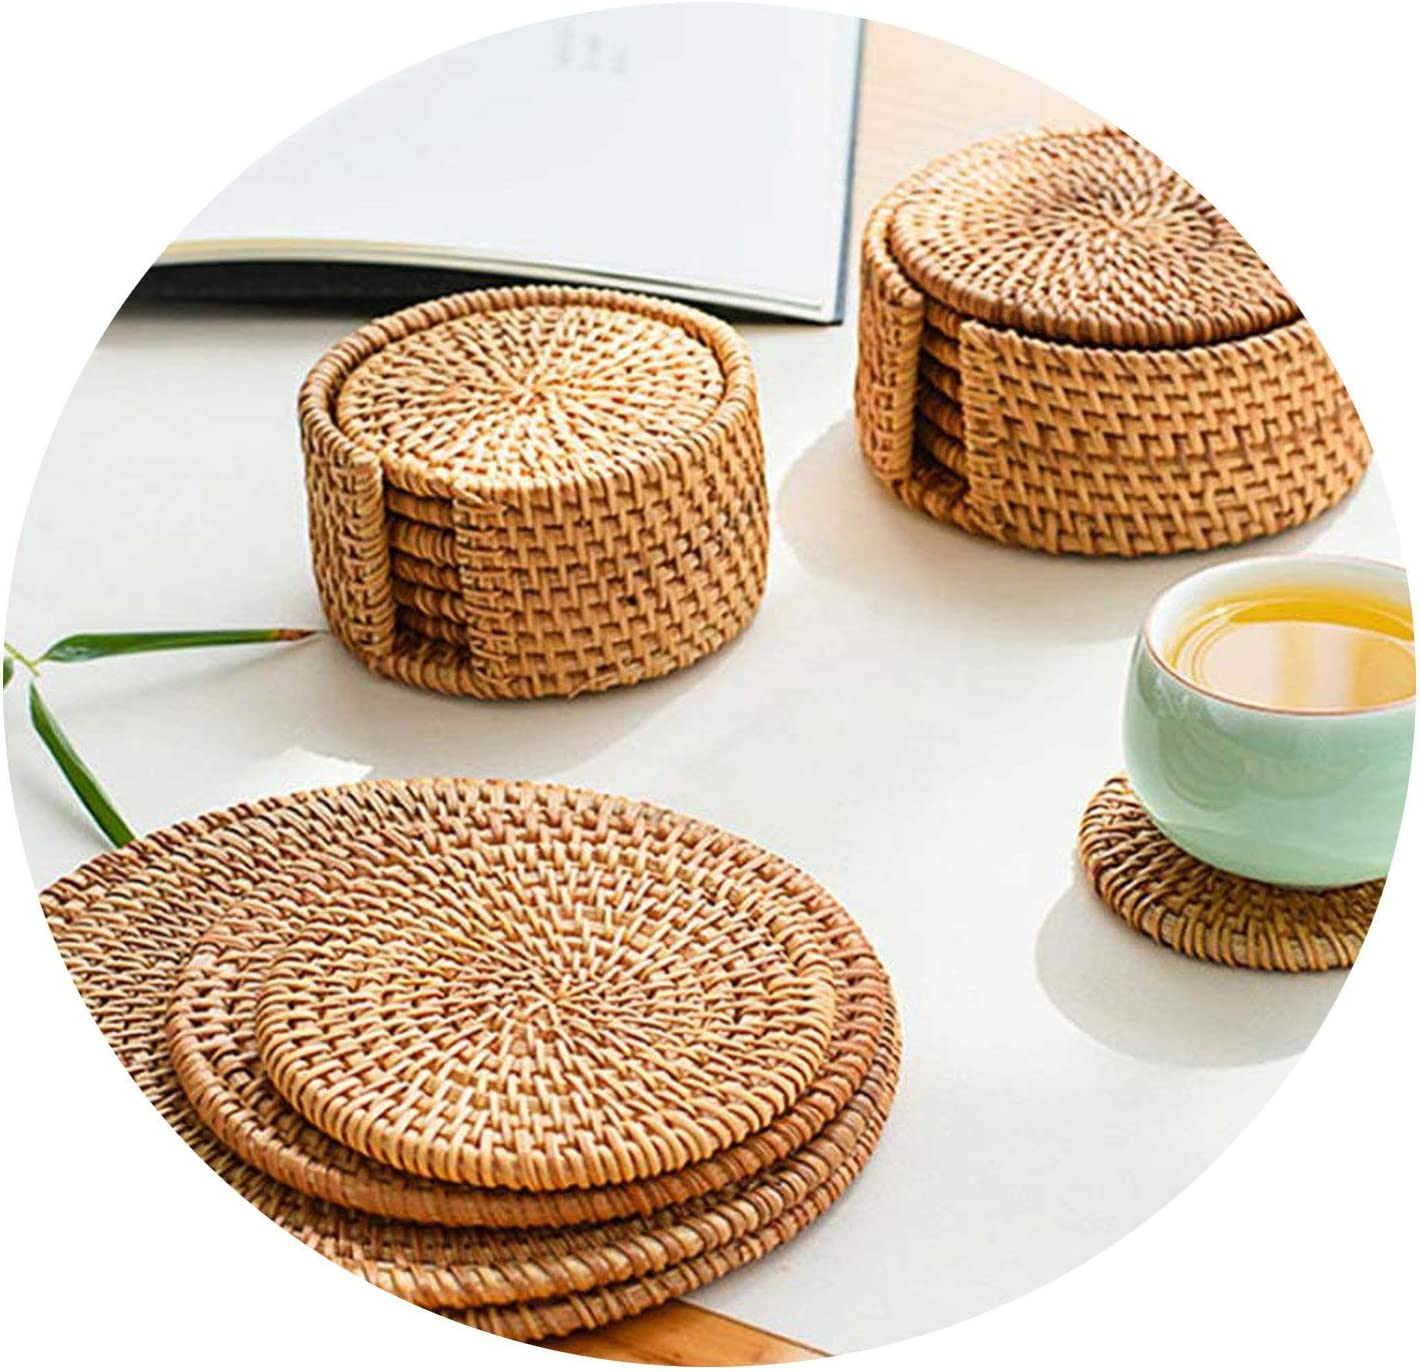 Insulation Table Mats European Style Cotton Linen Bowl Round Placemat Coaster